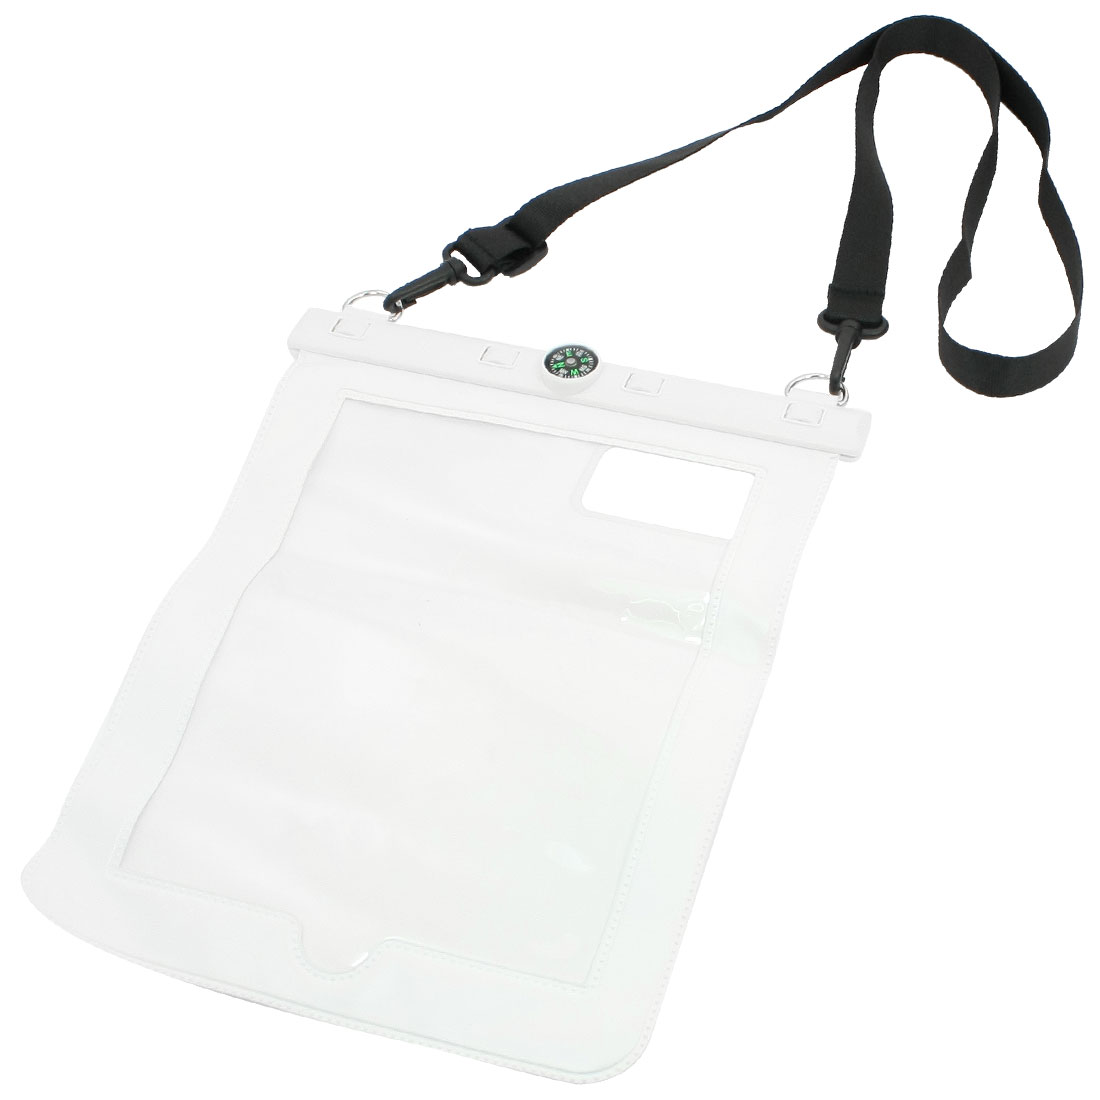 Compass Waterproof Swimming Protective Pouch Case for iPad 2 3 4 w Neck Strap